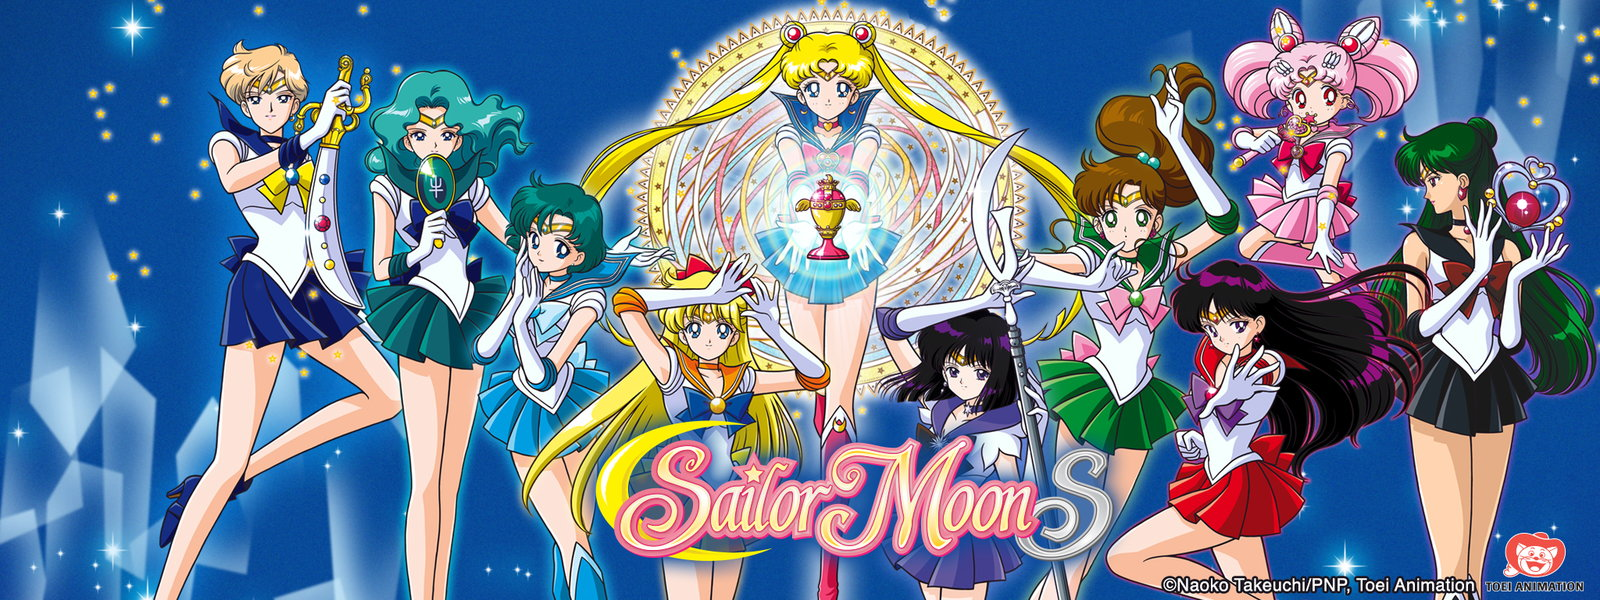 sailor_moon_s_banner.jpg